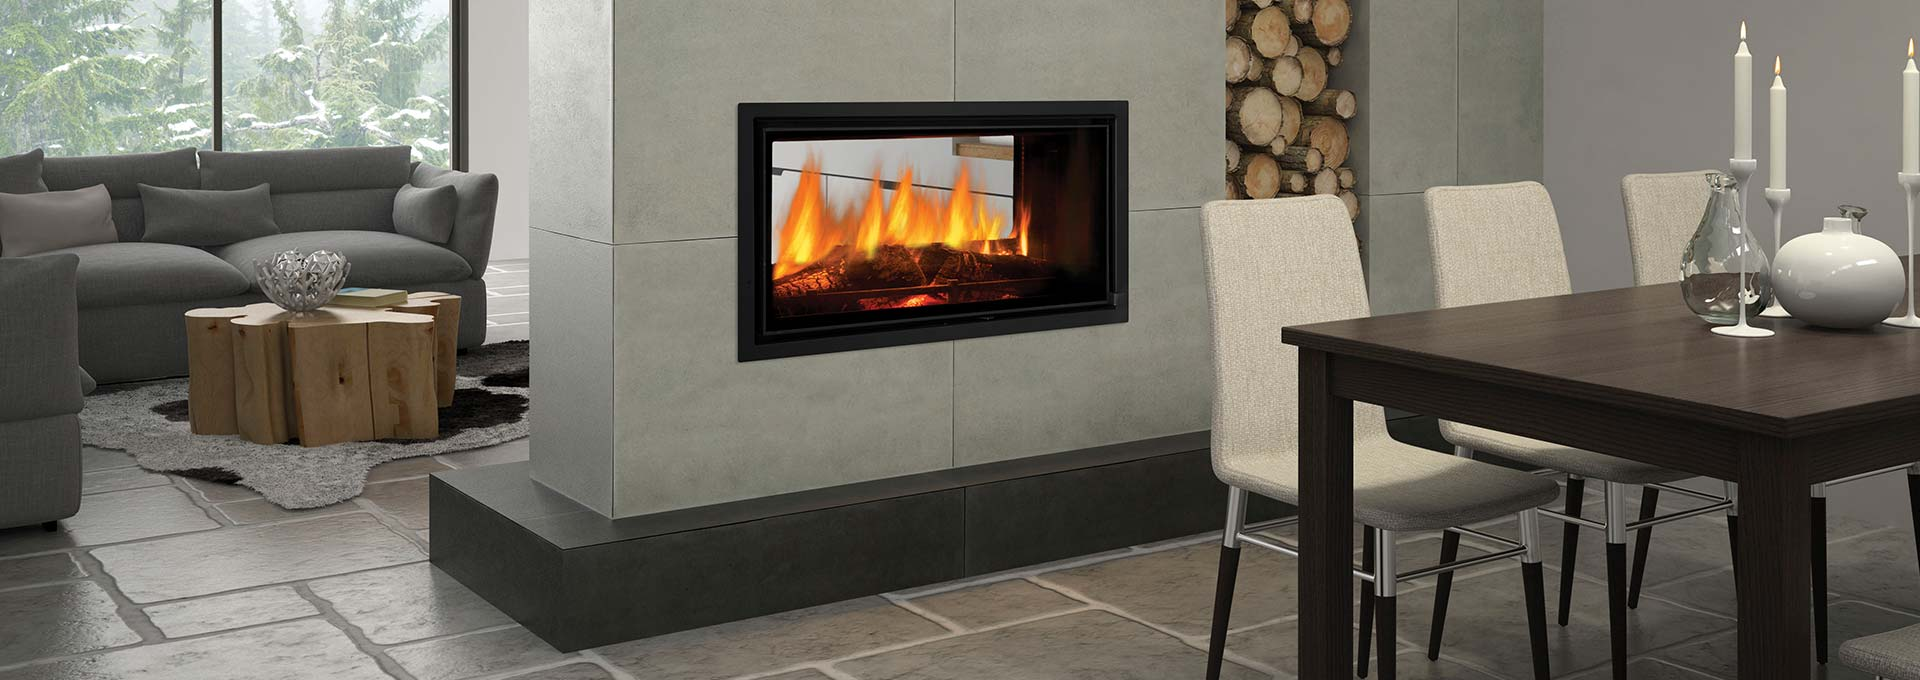 mansfield modern see through wood fireplace wood burning